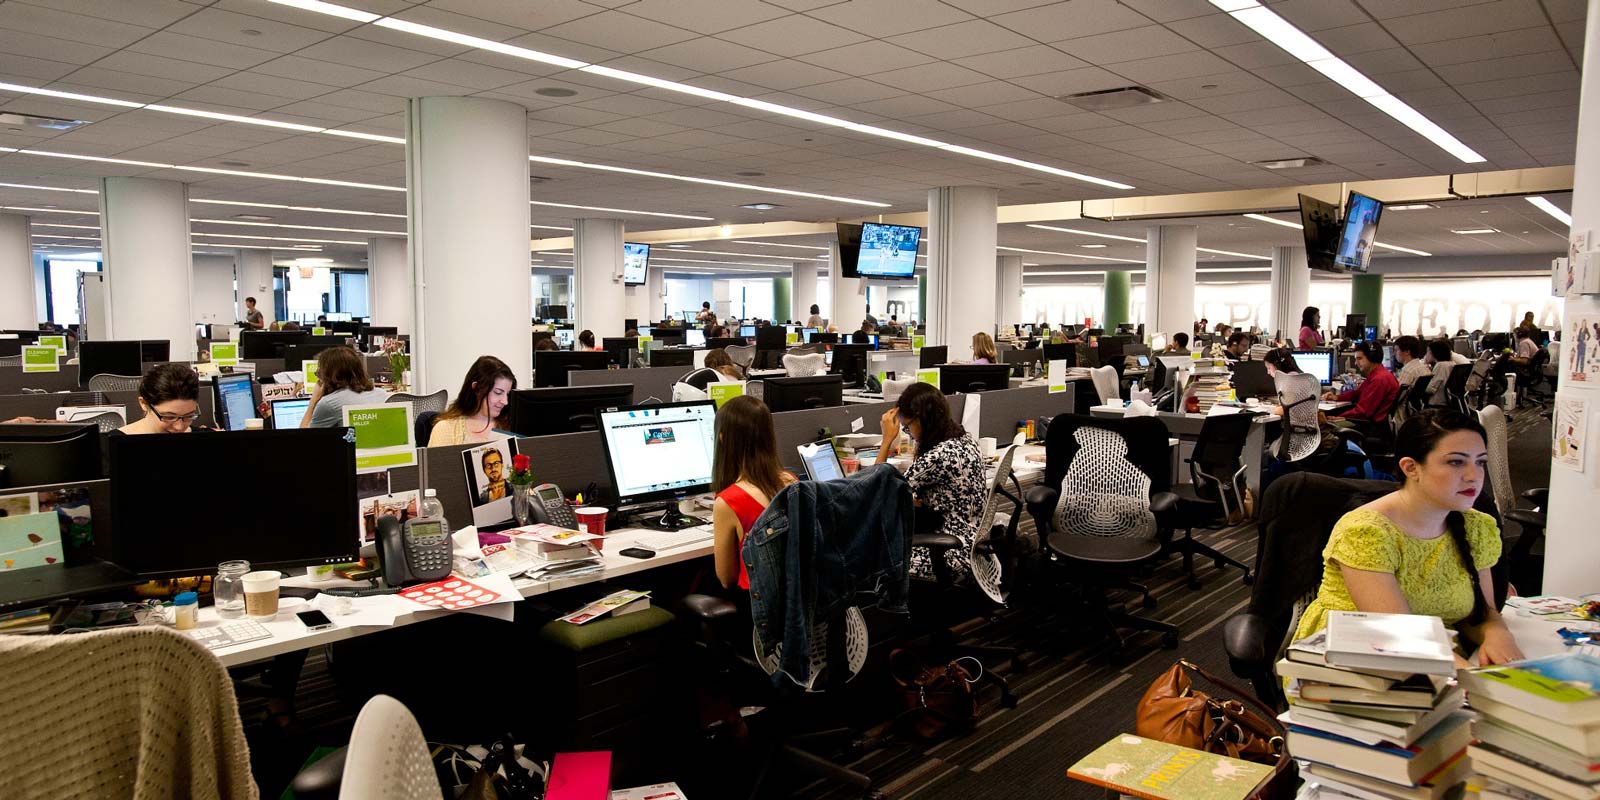 La salle de rédaction du Huffington Post à New York (Image : Huffington Post).